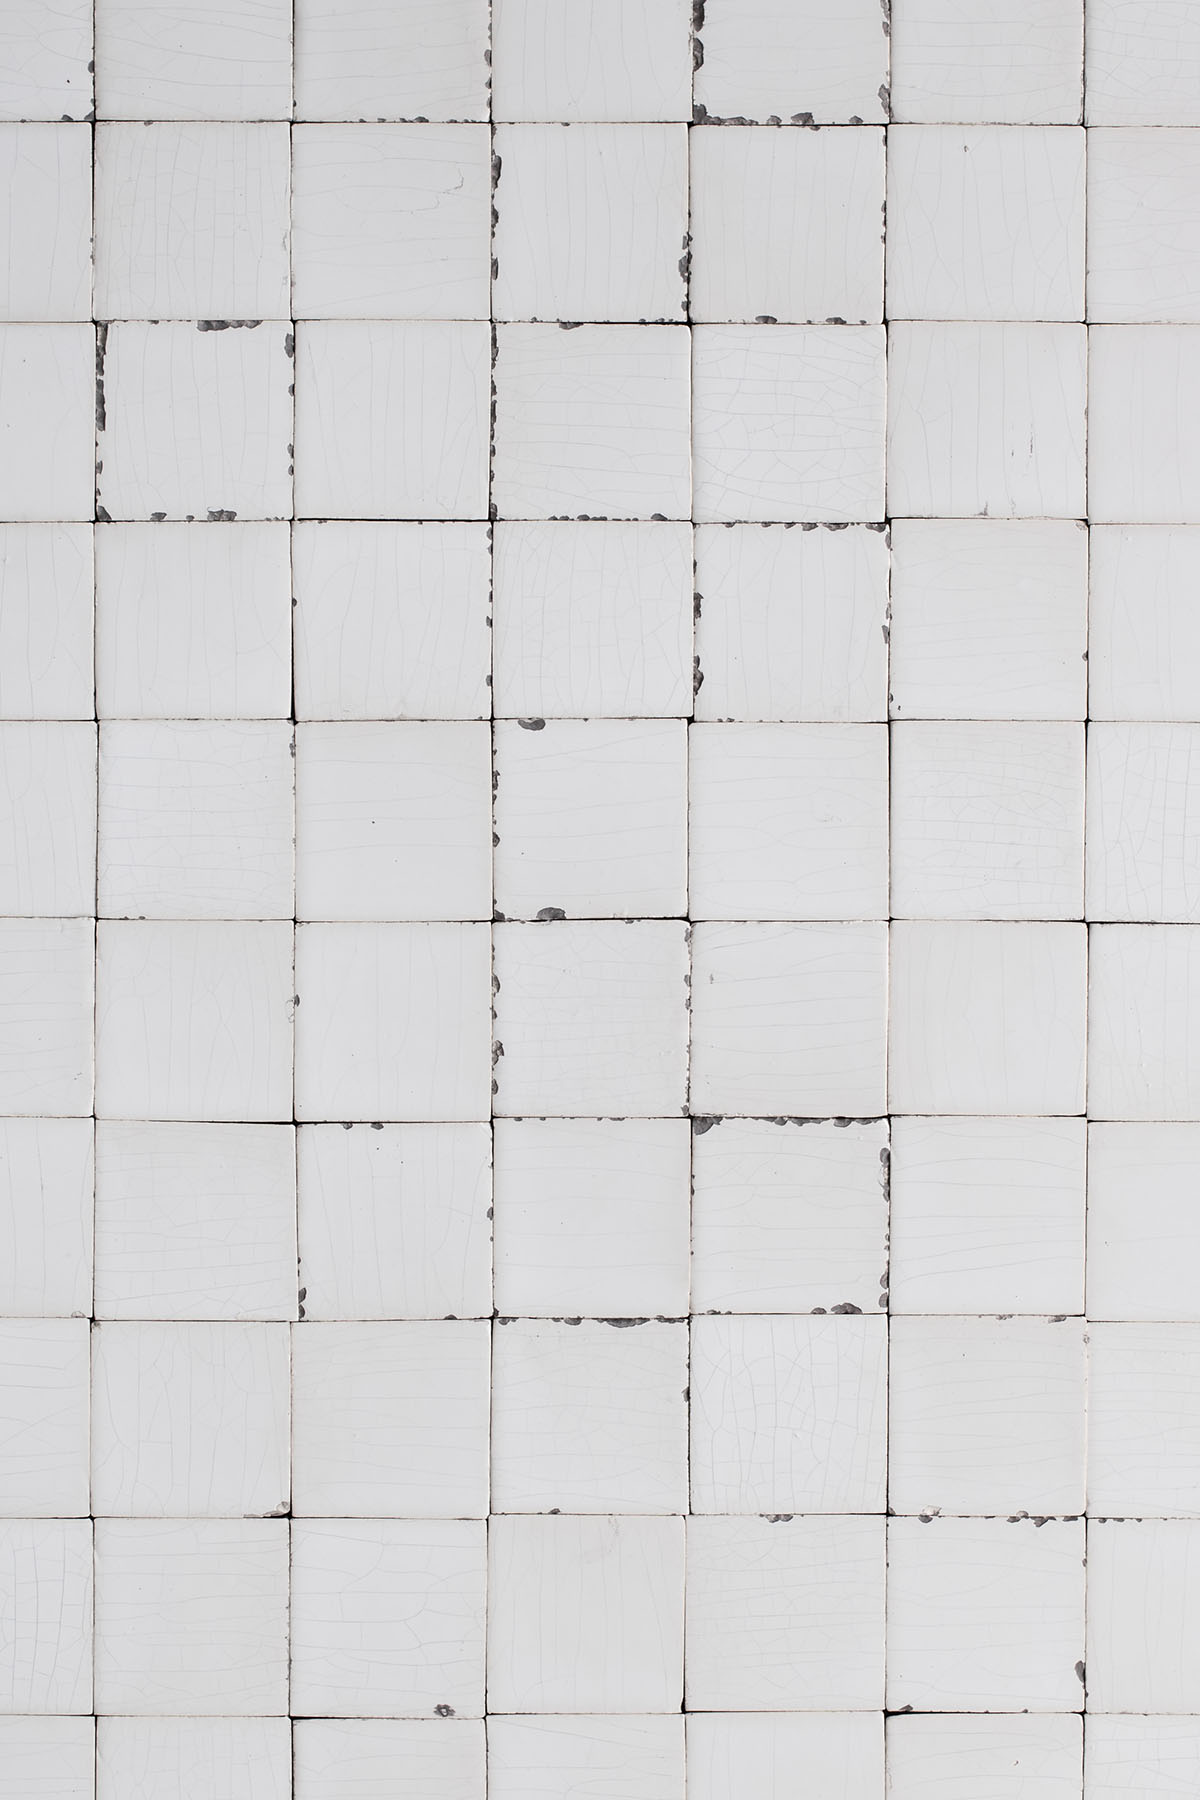 Damaged white tiles vinyl backdrop loaded with character for photography